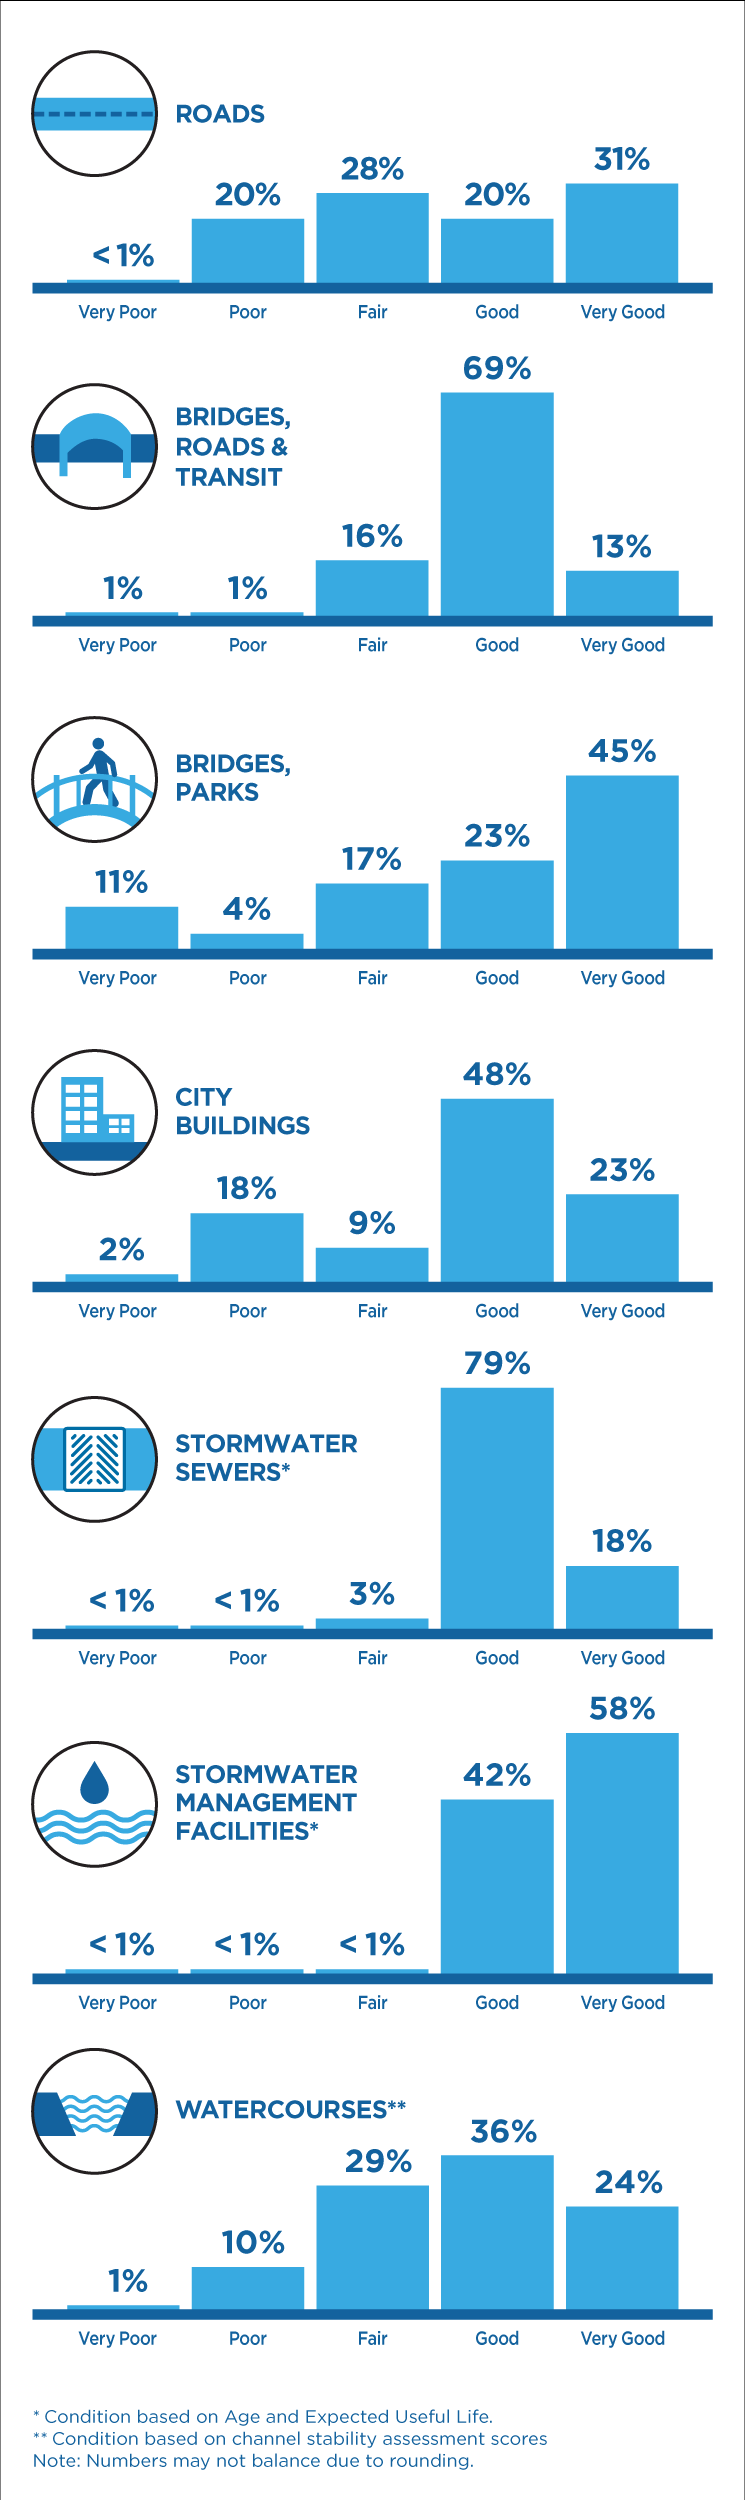 Bar graphs showing infrastructure maintenance conditions